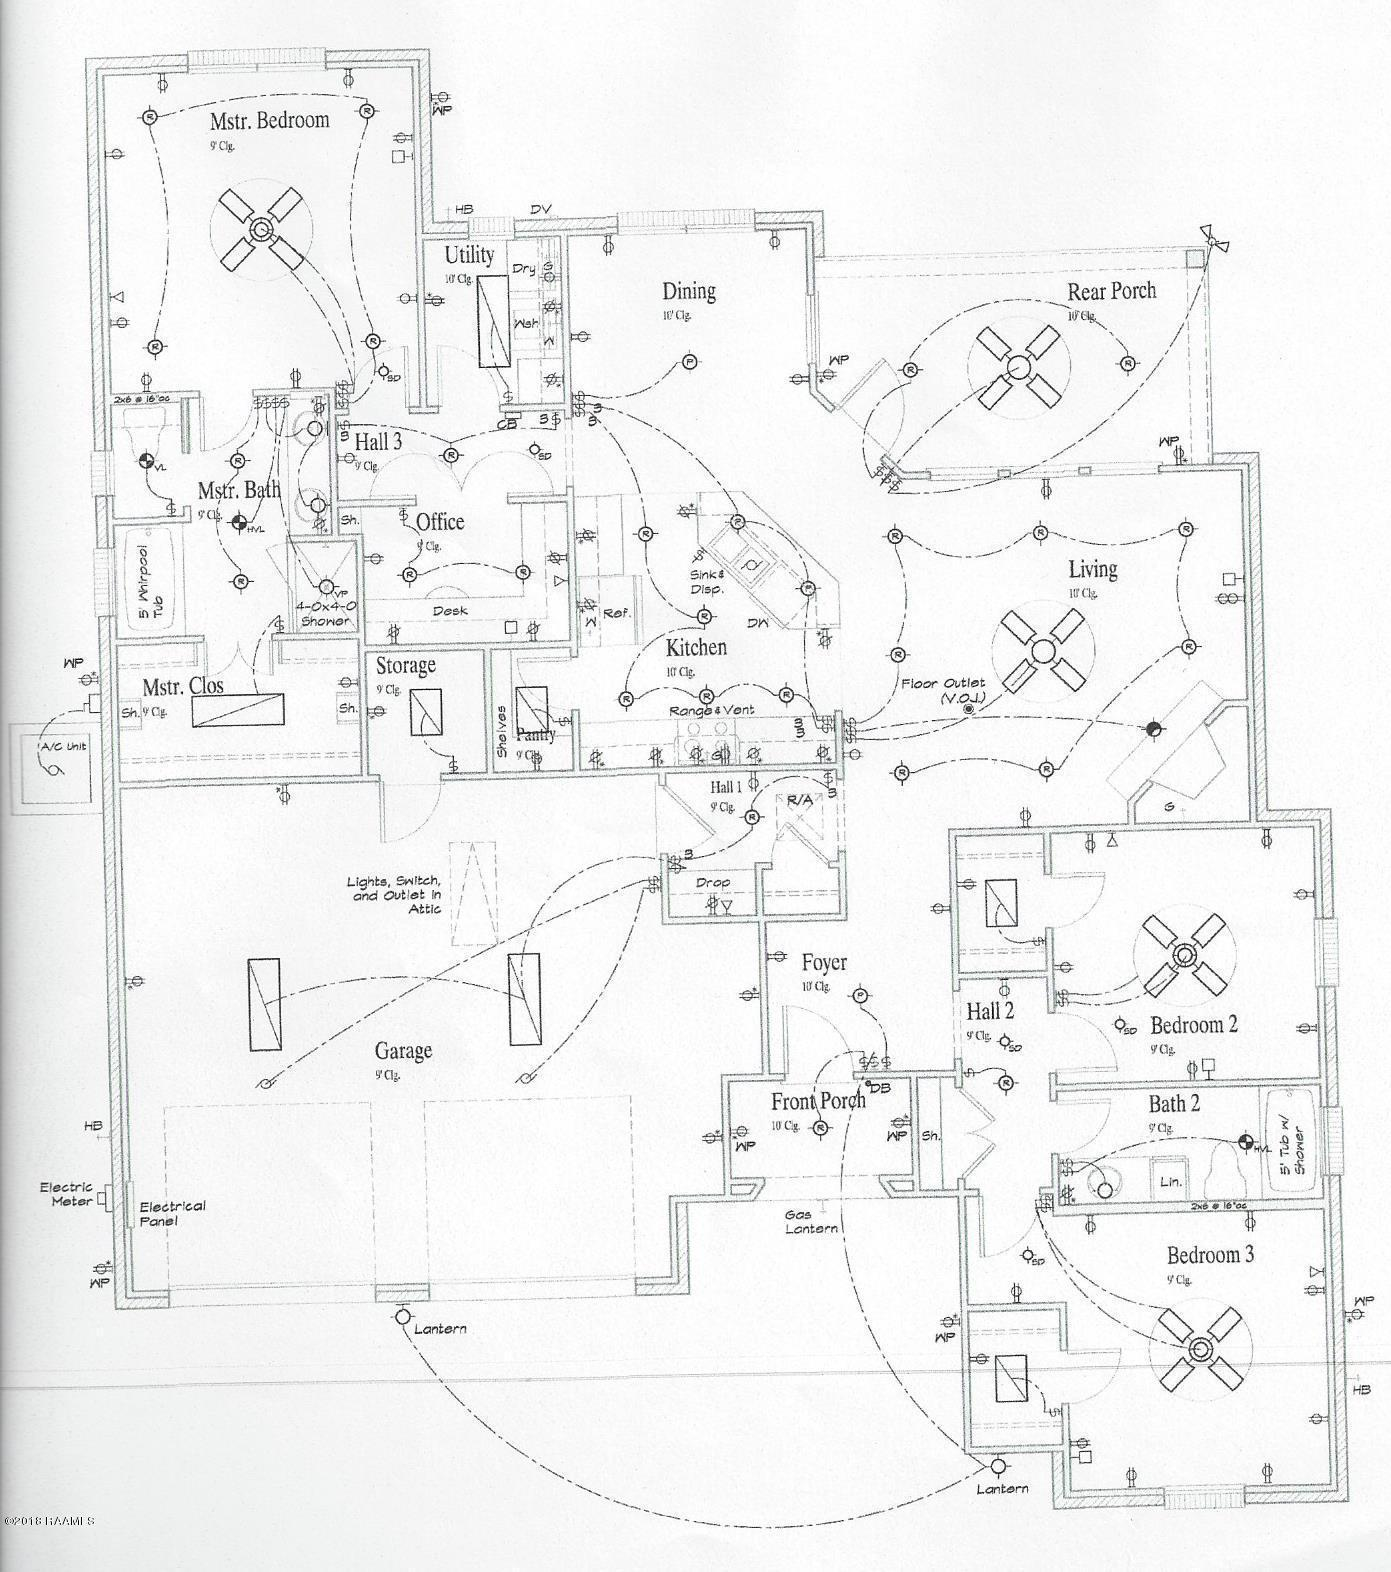 Liftmaster 8500 Garage Door Opener Schematic